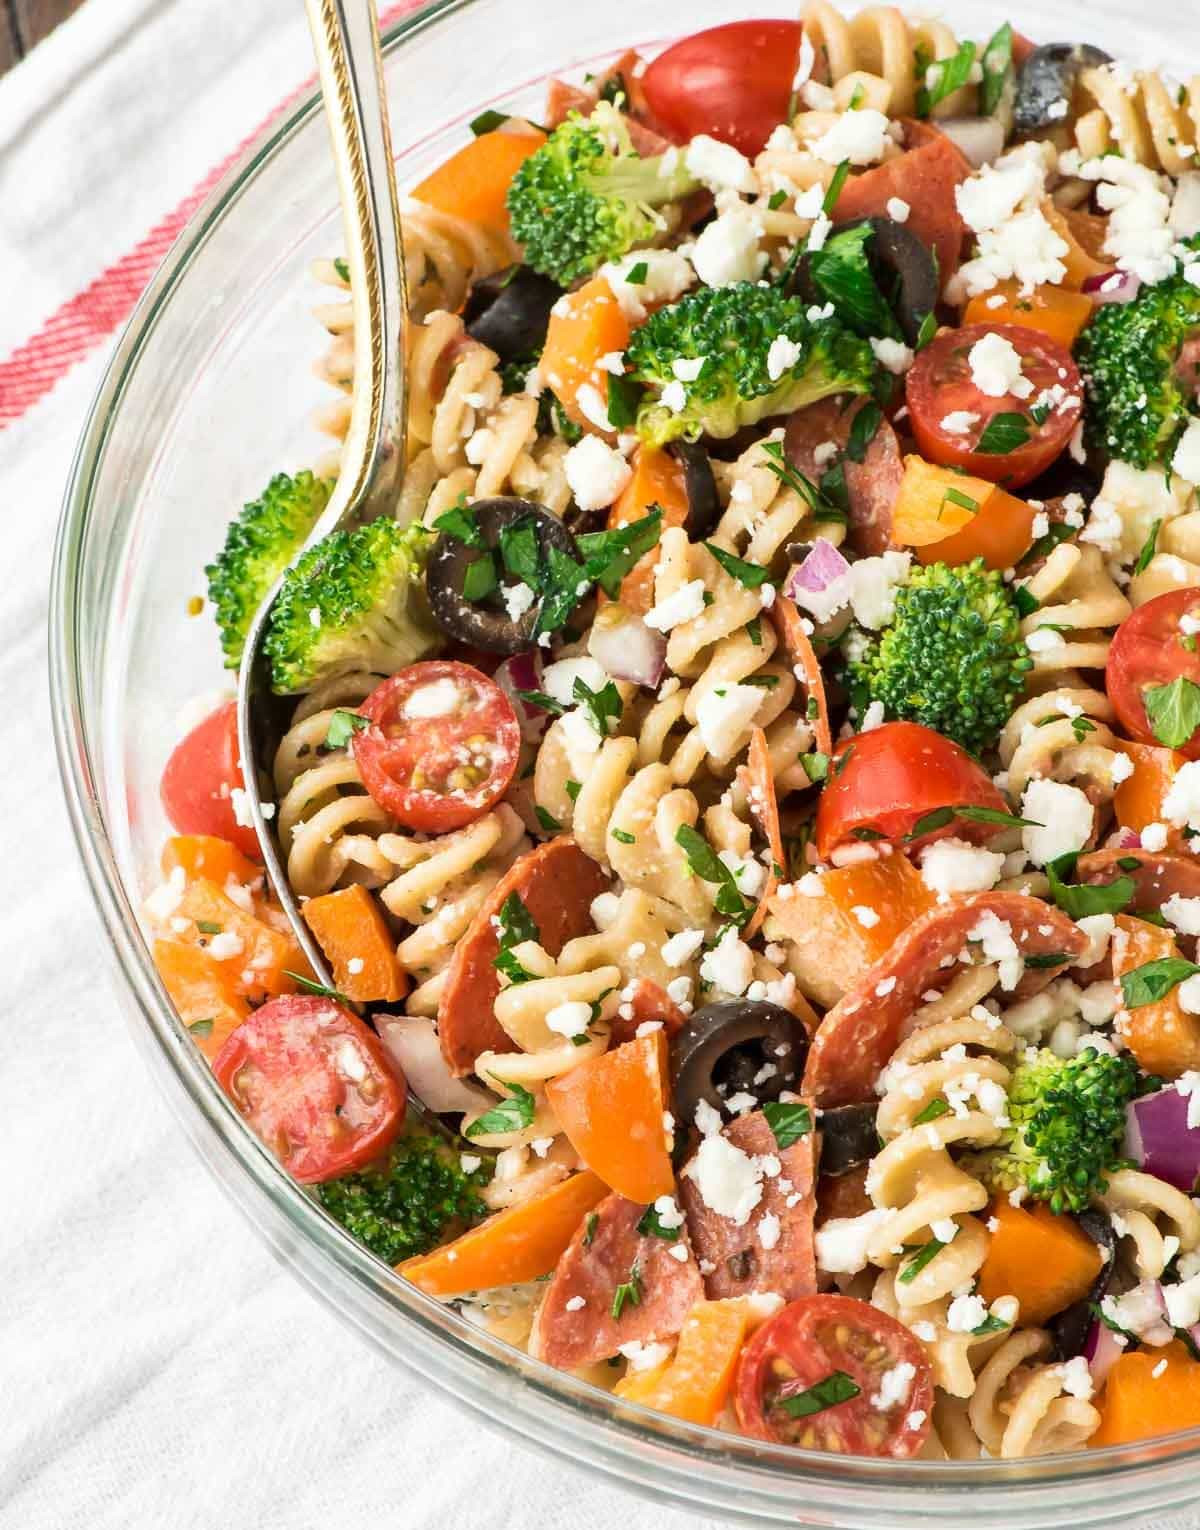 Healthy Pasta Salad Recipes the top 20 Ideas About asian Noodle Salad with Creamy Peanut Dressing